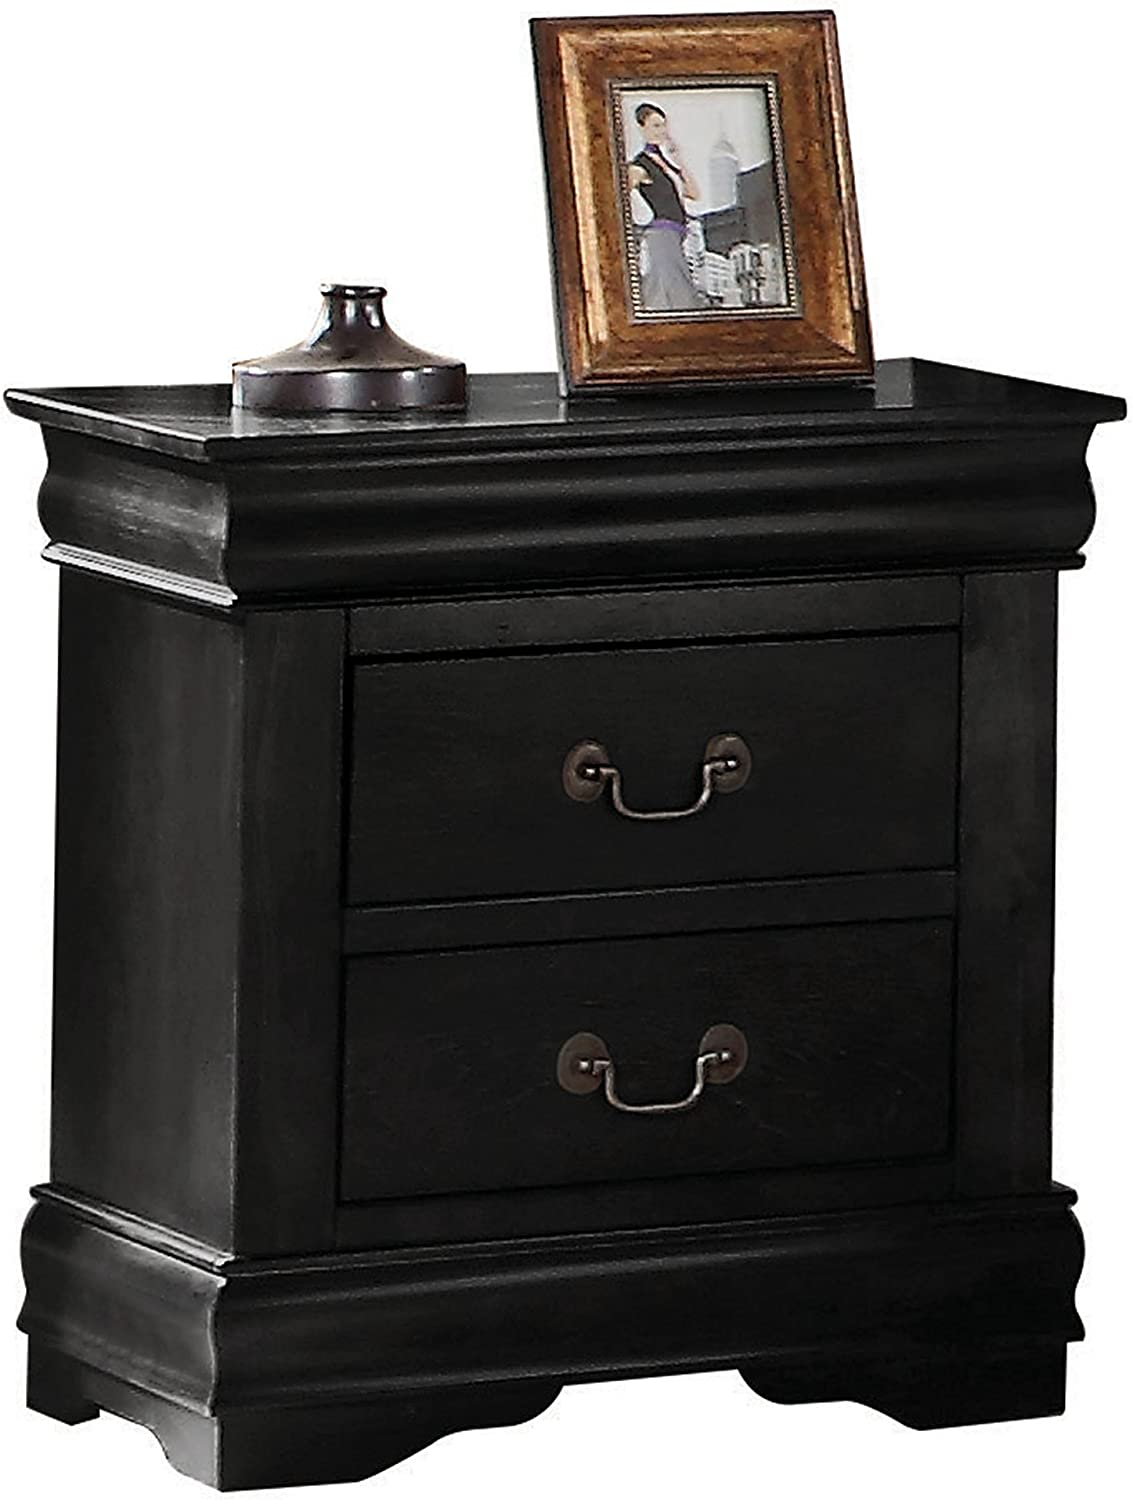 One Size Black ACME Furniture Louis Philippe 23733 Nightstand